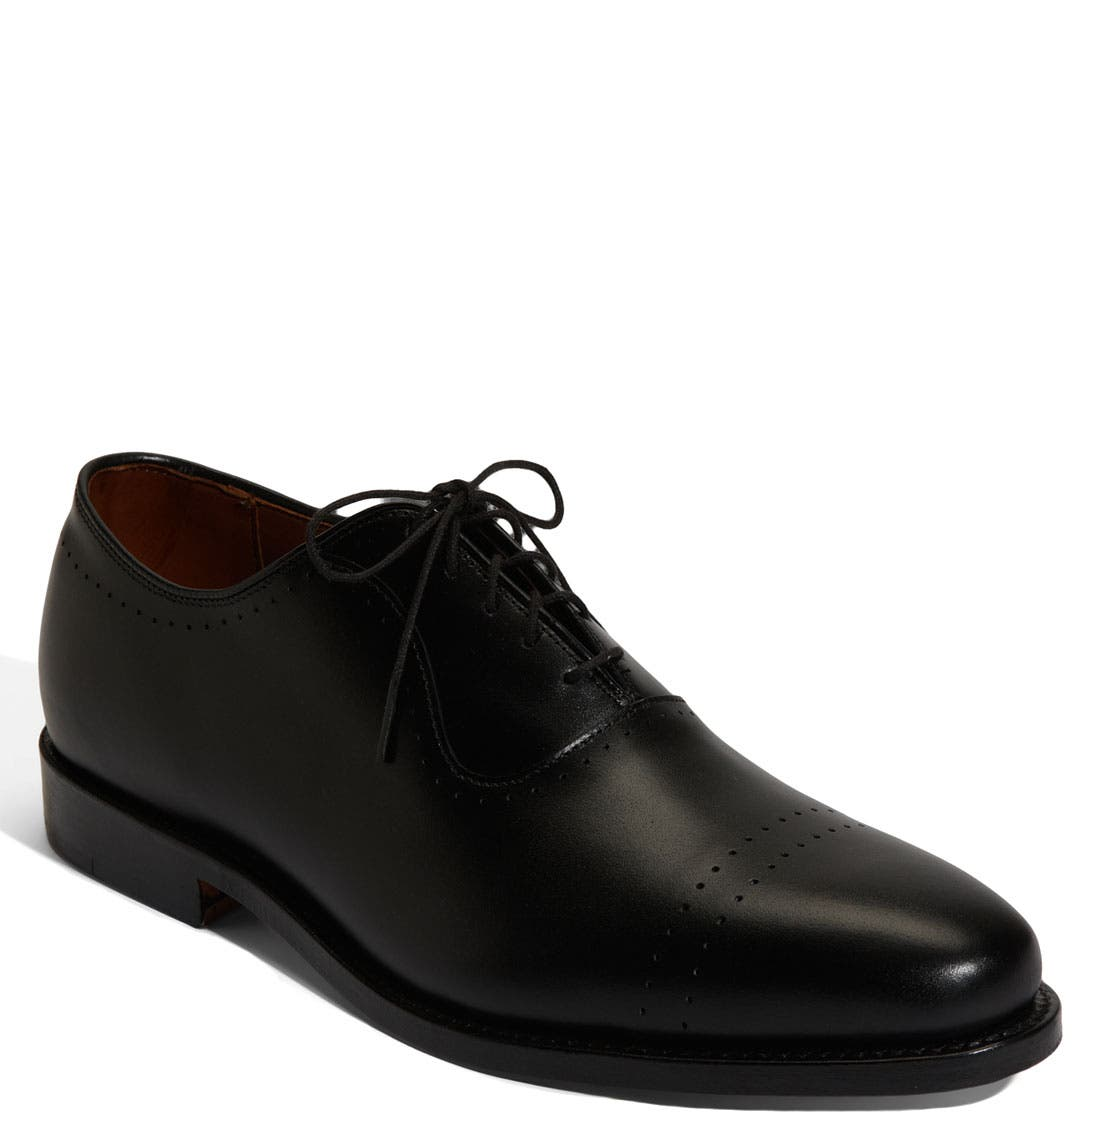 Alternate Image 1 Selected - Allen Edmonds 'Vernon' Oxford (Men)